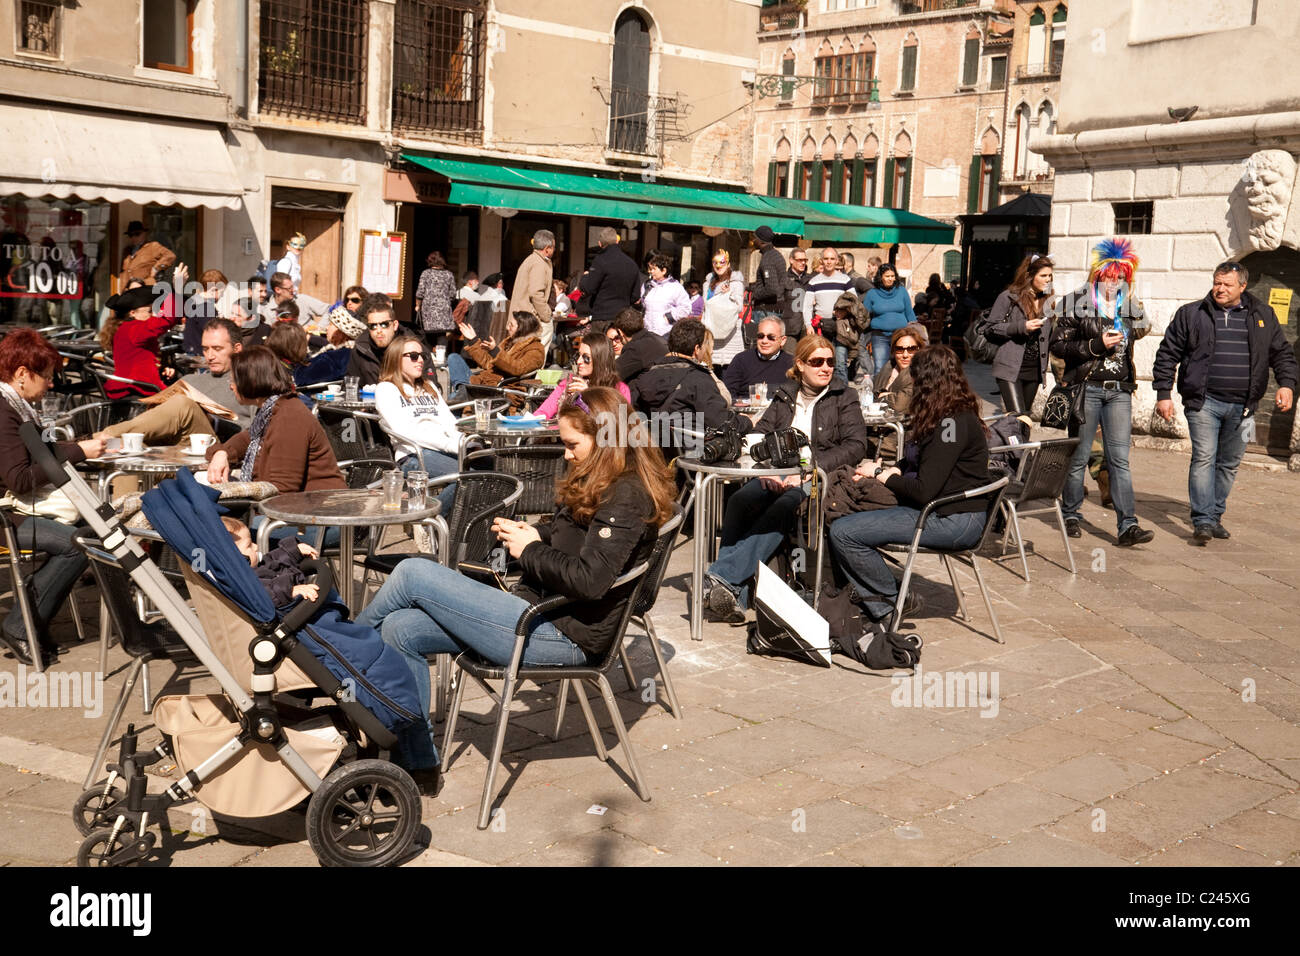 italy cafe photos italy cafe images alamy. Black Bedroom Furniture Sets. Home Design Ideas